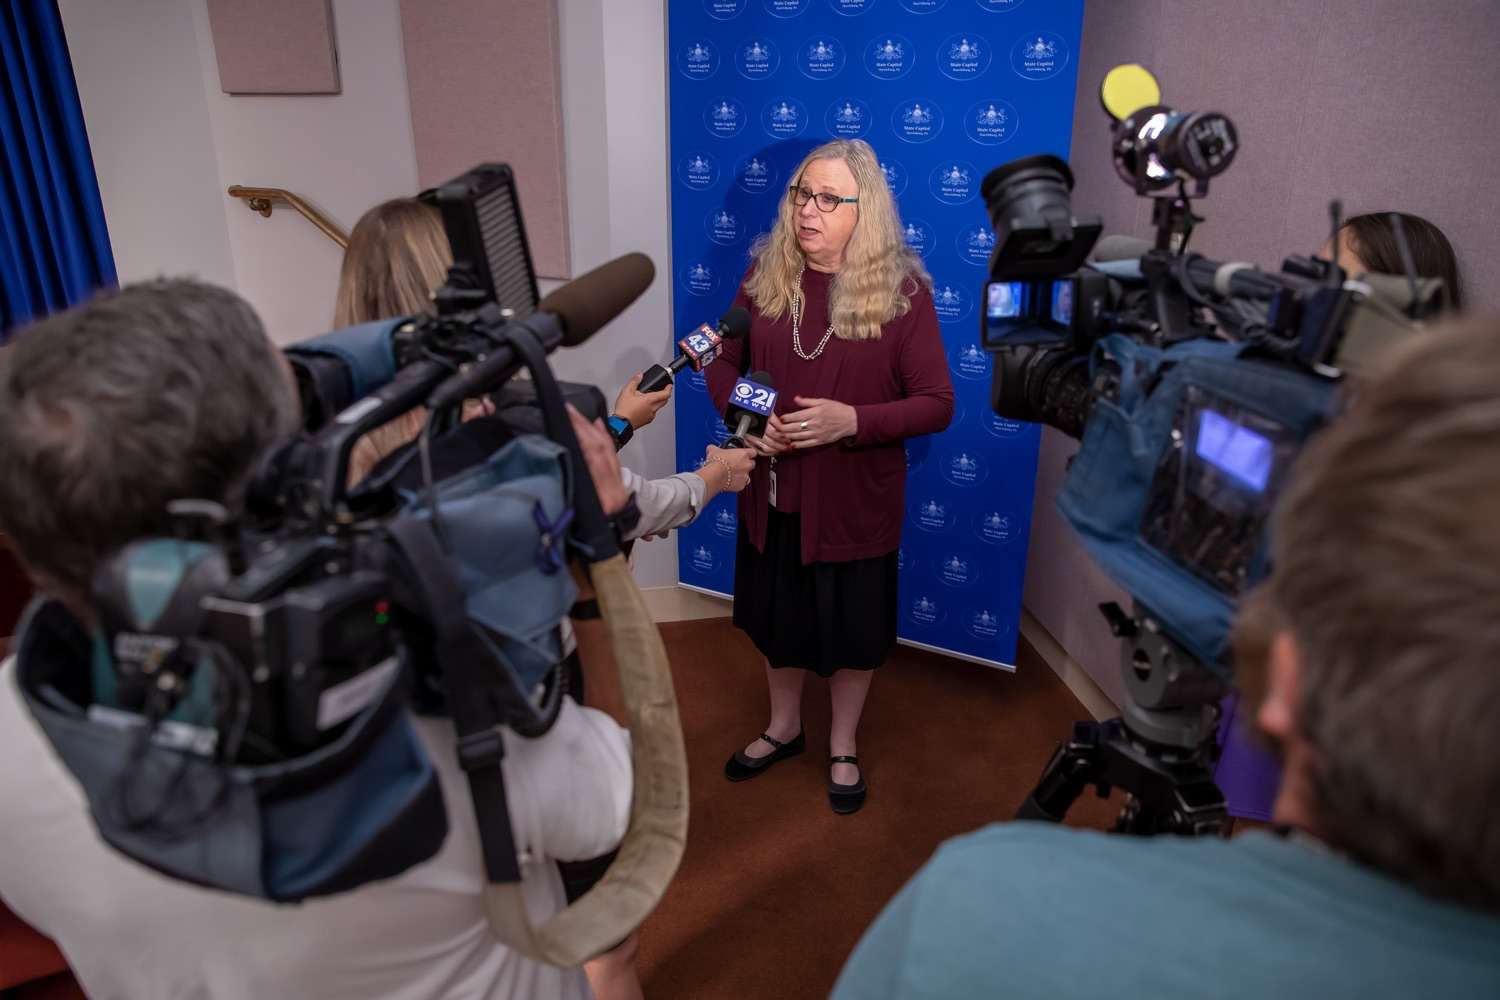 "<a href=""http://filesource.abacast.com/commonwealthofpa/photo/17415_DOH_RXGuidlines_AG_15.jpg"" target=""_blank"">⇣ Download Photo<br></a>Harrisburg, PA.  Dr. Rachel Levine, Secretary of the Pennsylvania Dept. of Health, speaking to media outlets after Wednesday's press conference announcing the latest updated prescribing guideline, Treating Pain in Patients with OUD, as part of the second Stop Overdoses in PA: Get Help Now Week, a statewide initiative to get the overdose reversal medication naloxone to Pennsylvanians and get help for residents suffering from the disease of opioid use disorder (OUD).  September 18, 2019"